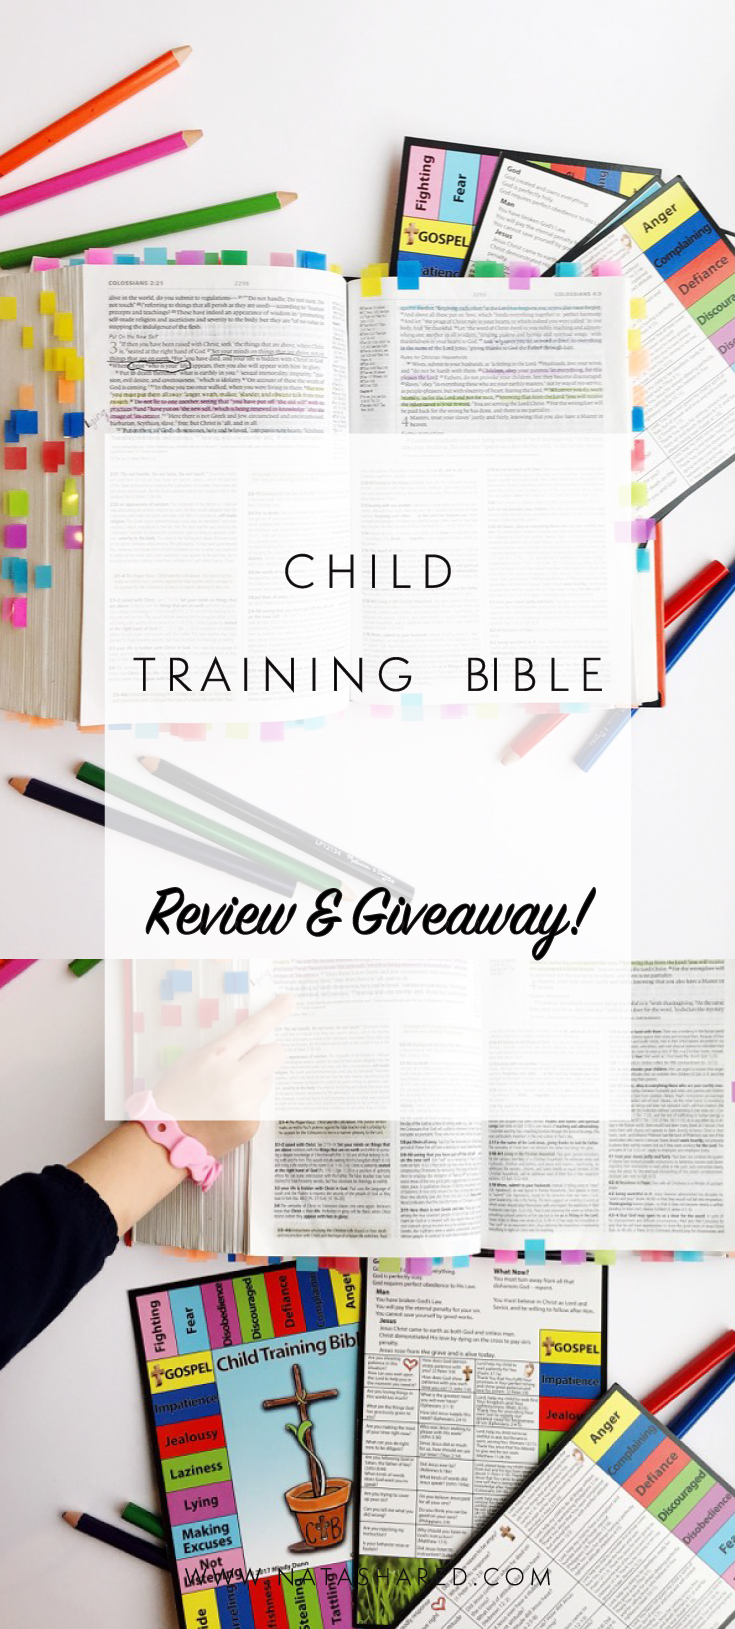 Child Training Bible Review